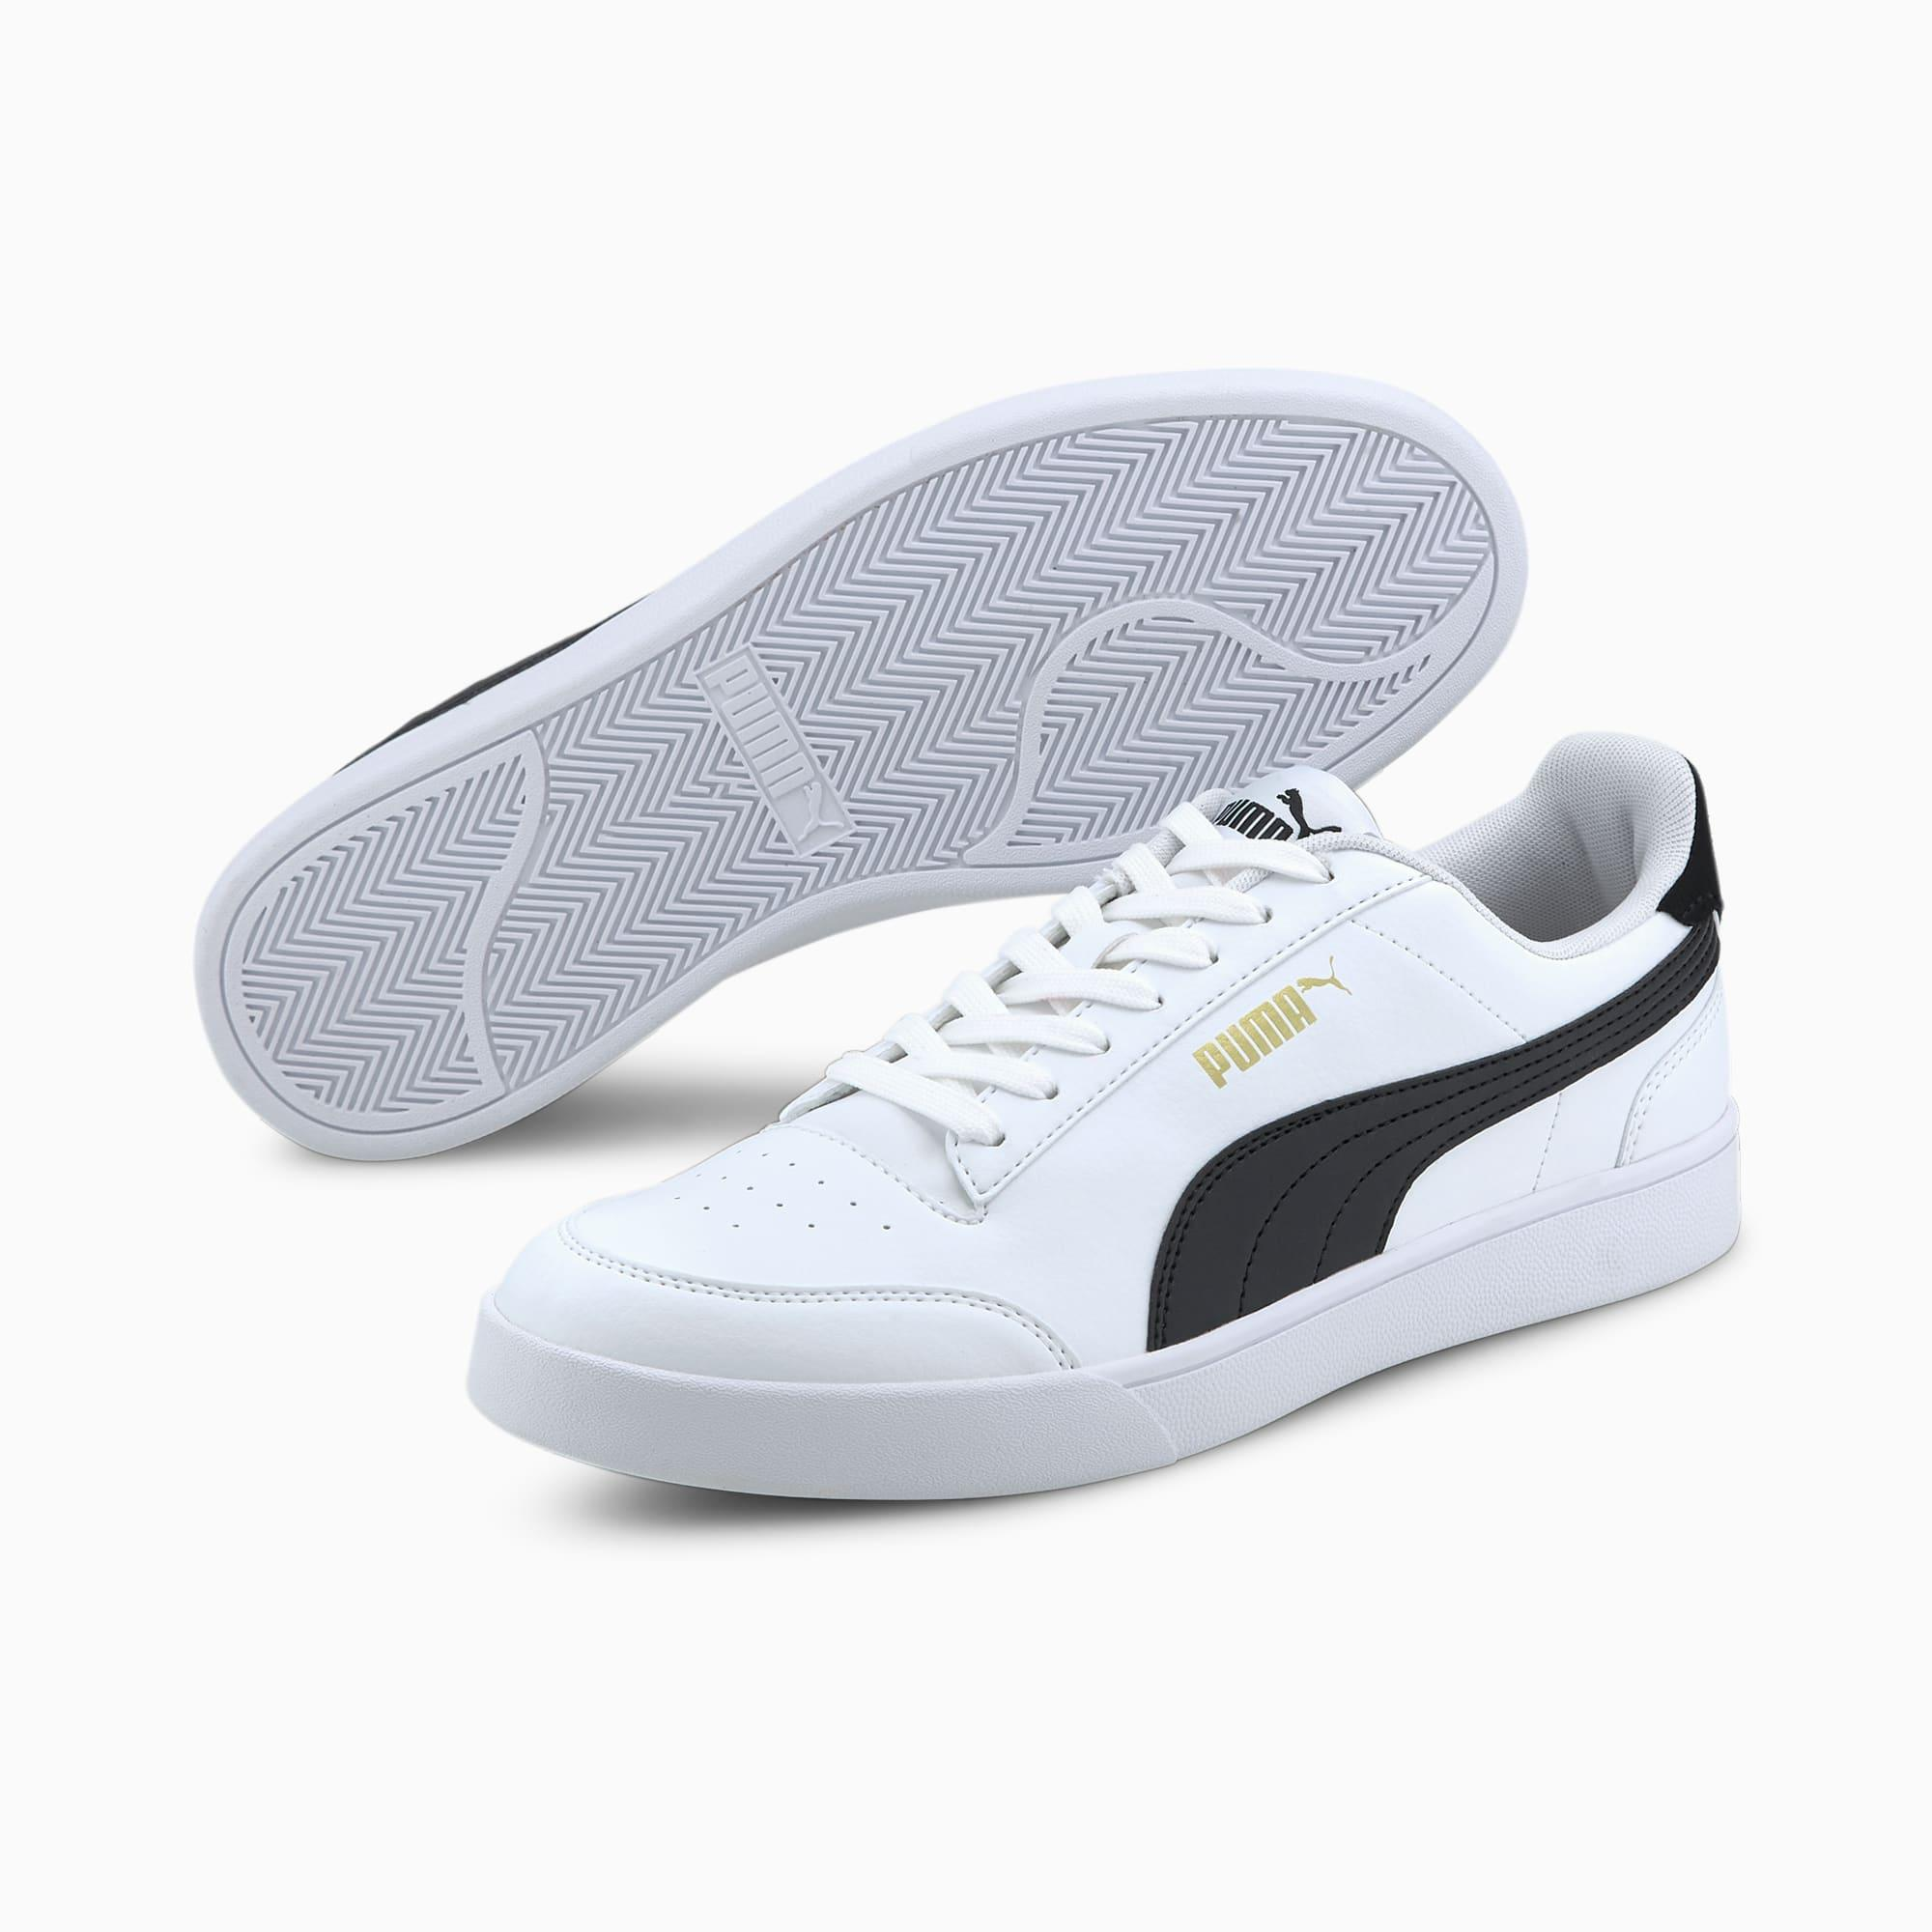 PUMA Lace Shuffle Sneakers in White for Men - Lyst